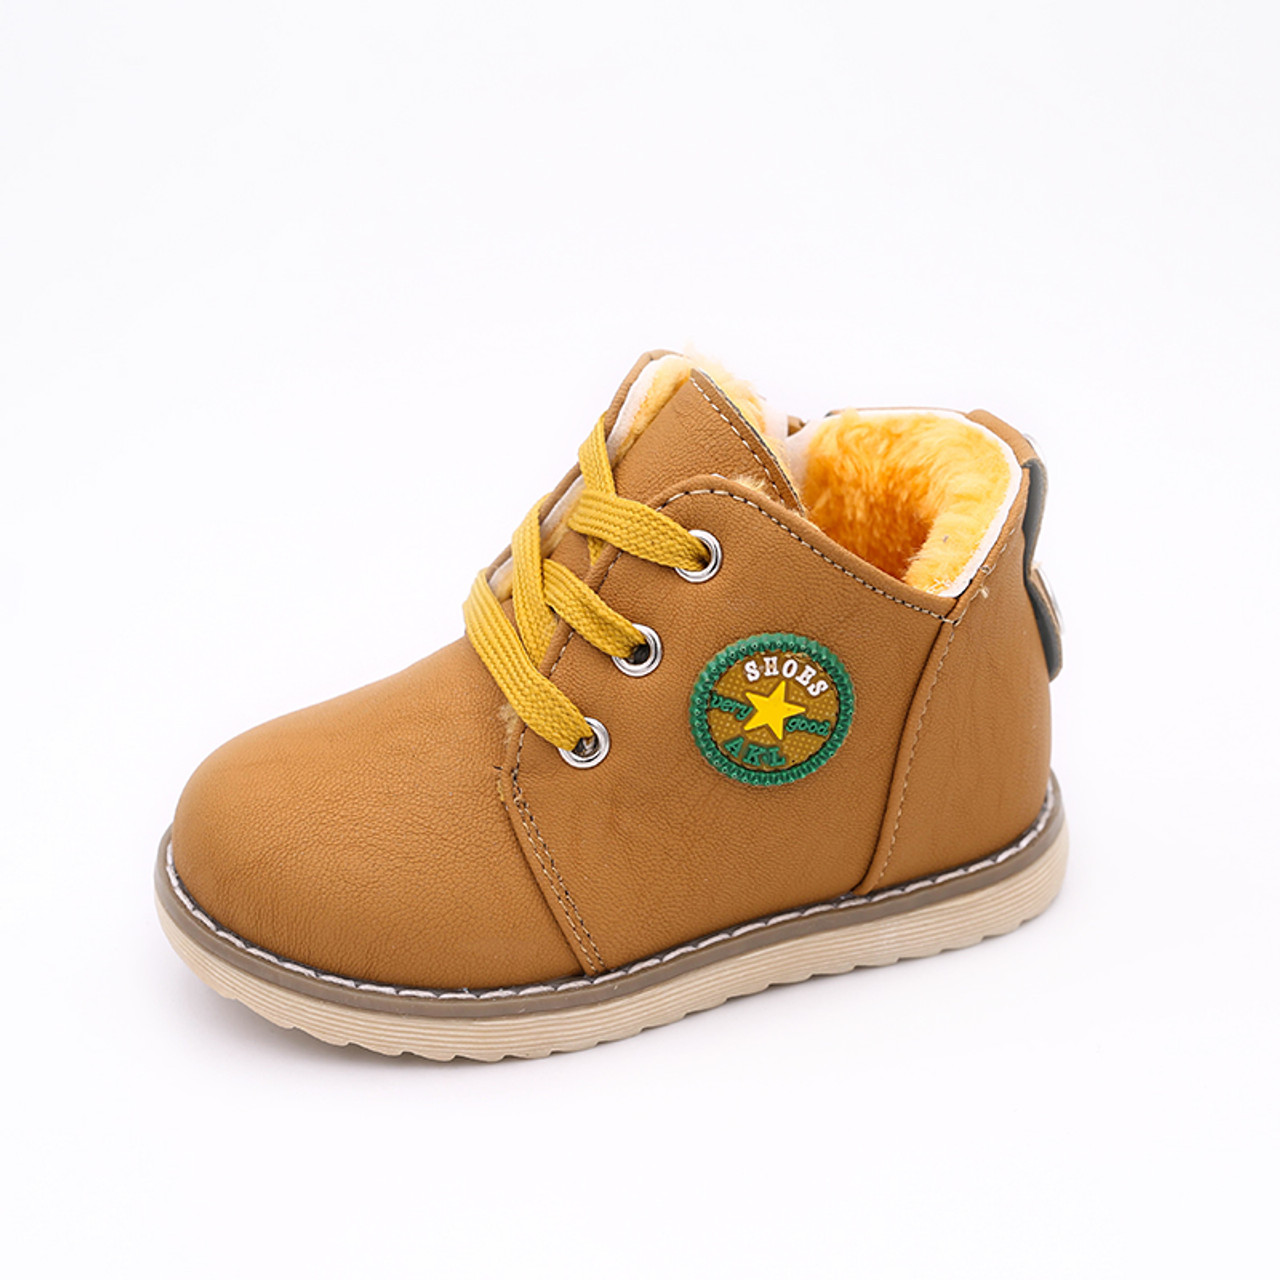 9e0c444a3b ... Top Selling Kids Boys Shoes Classic Boys Martin Boots Winter Warm Sport  Casual Baby Girls Shoes ...